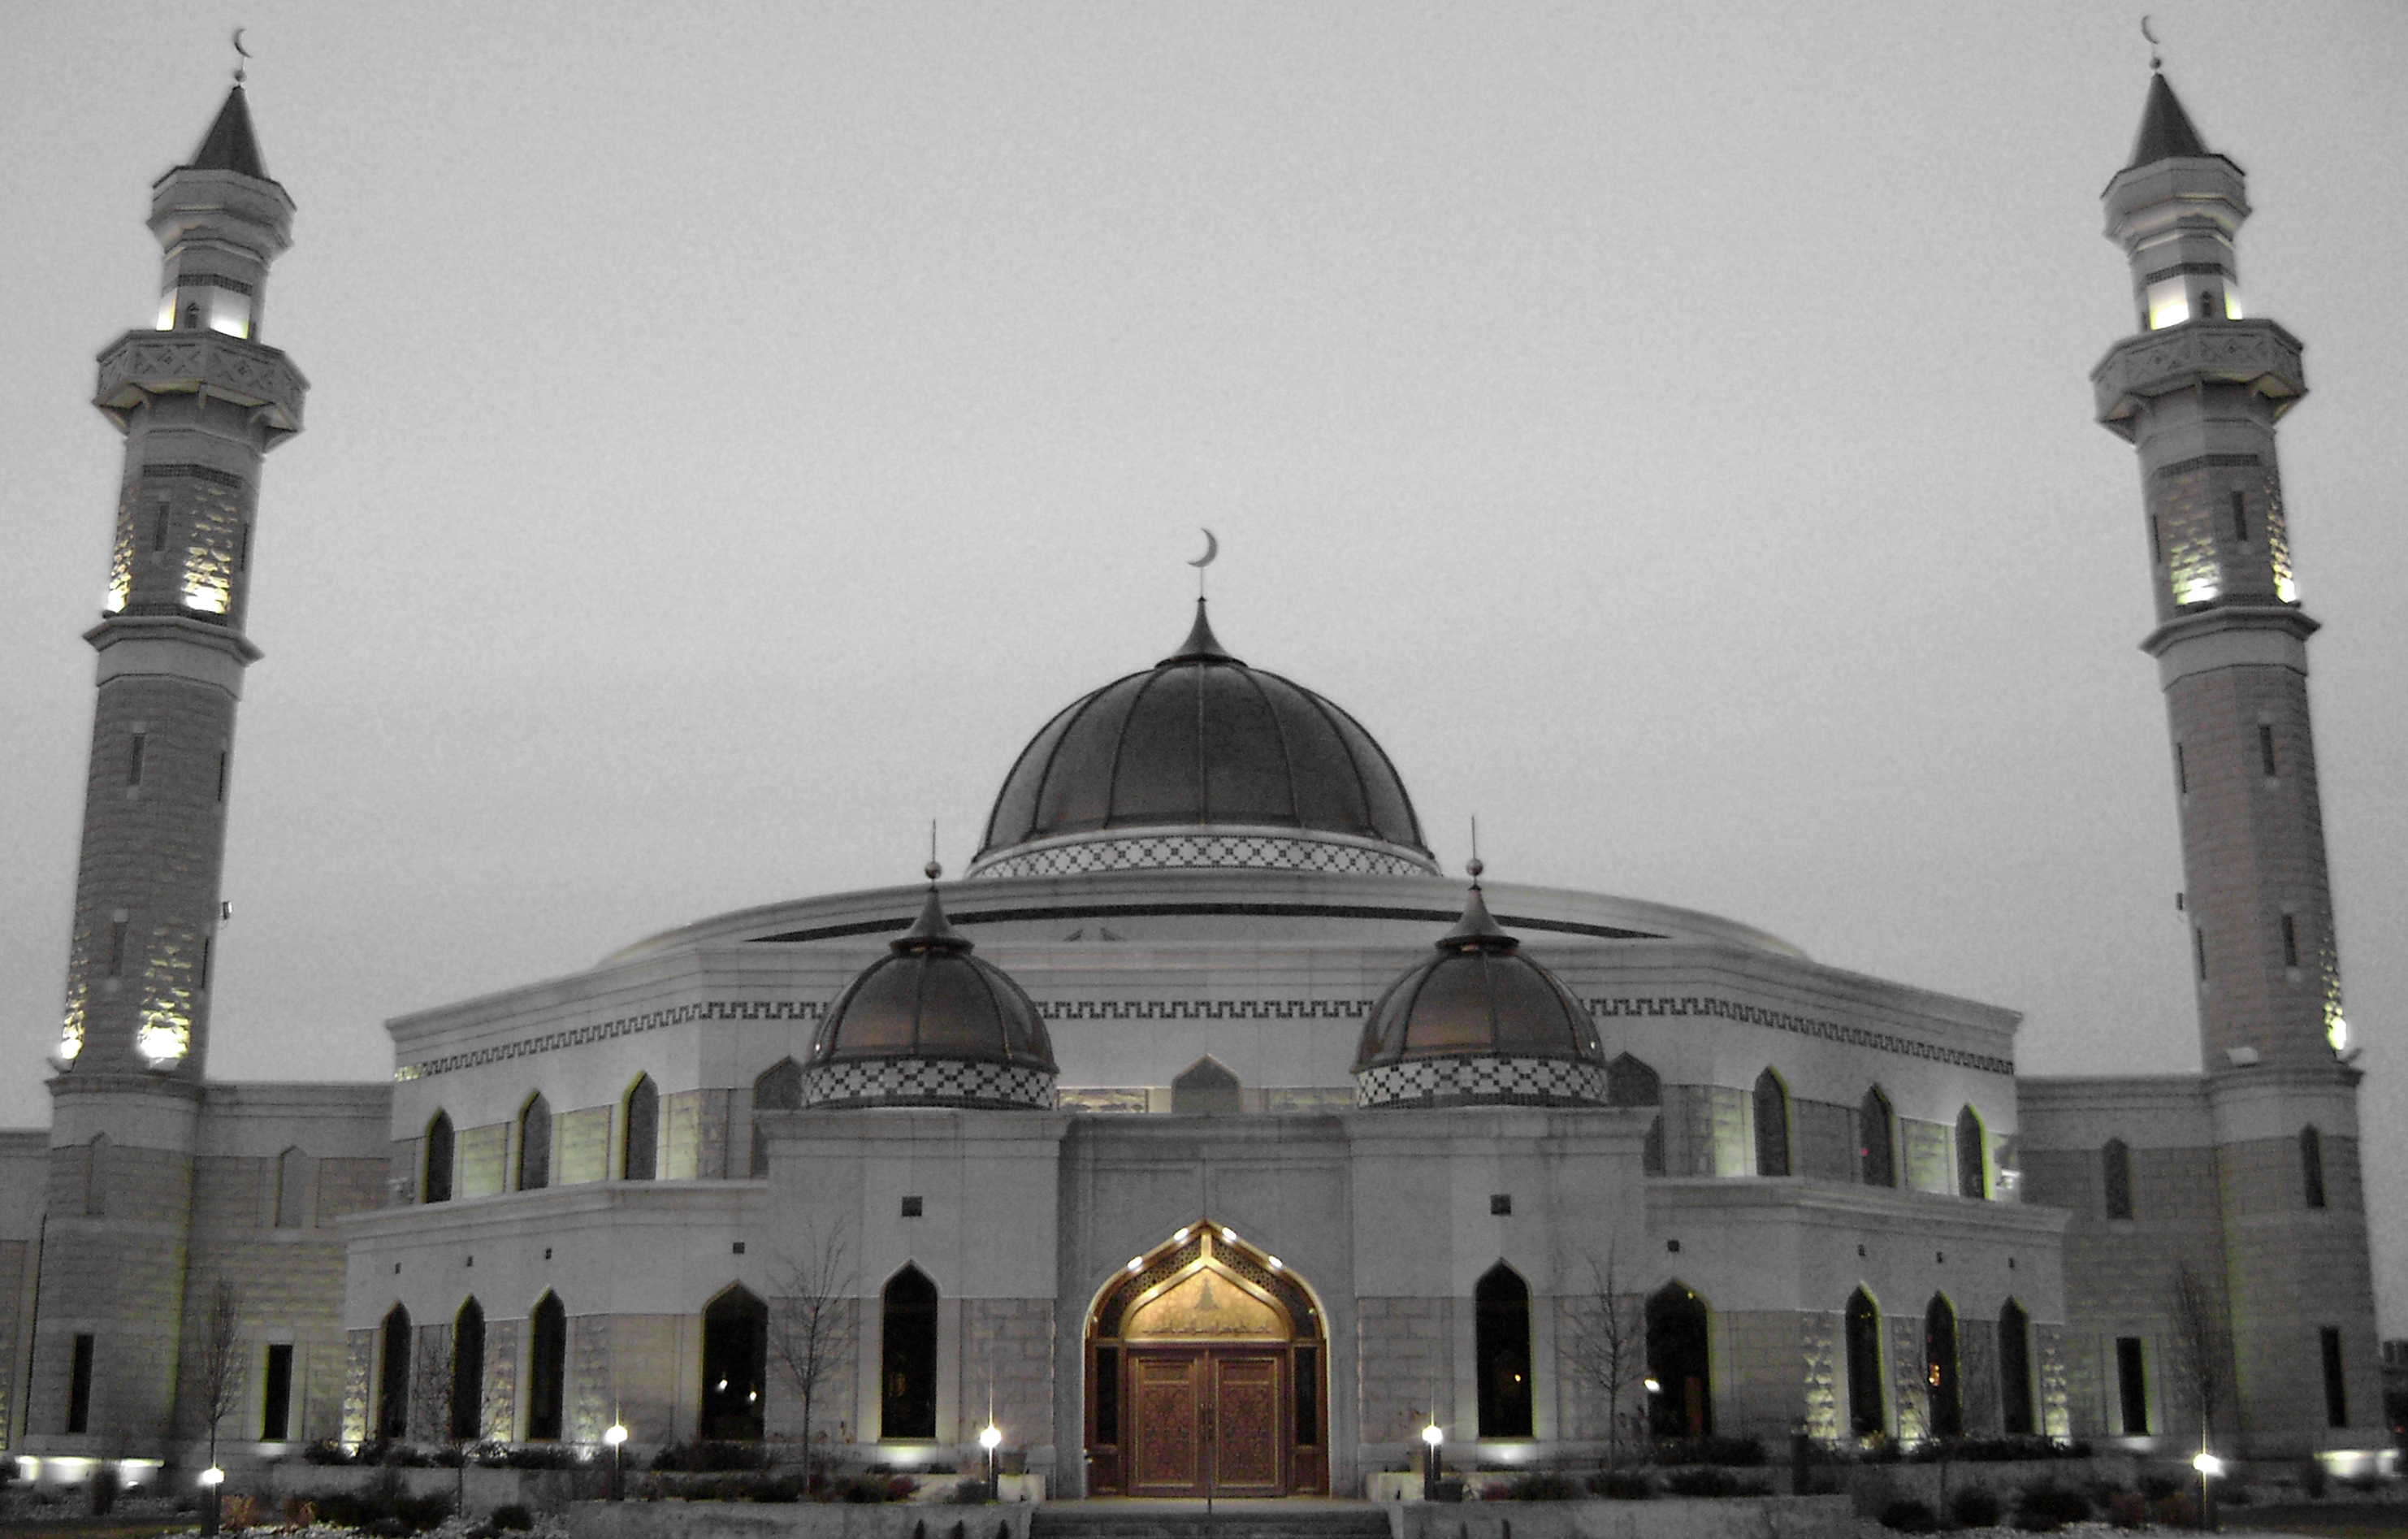 How Mosques Are Self-Empowering Against Hate This Ramadan